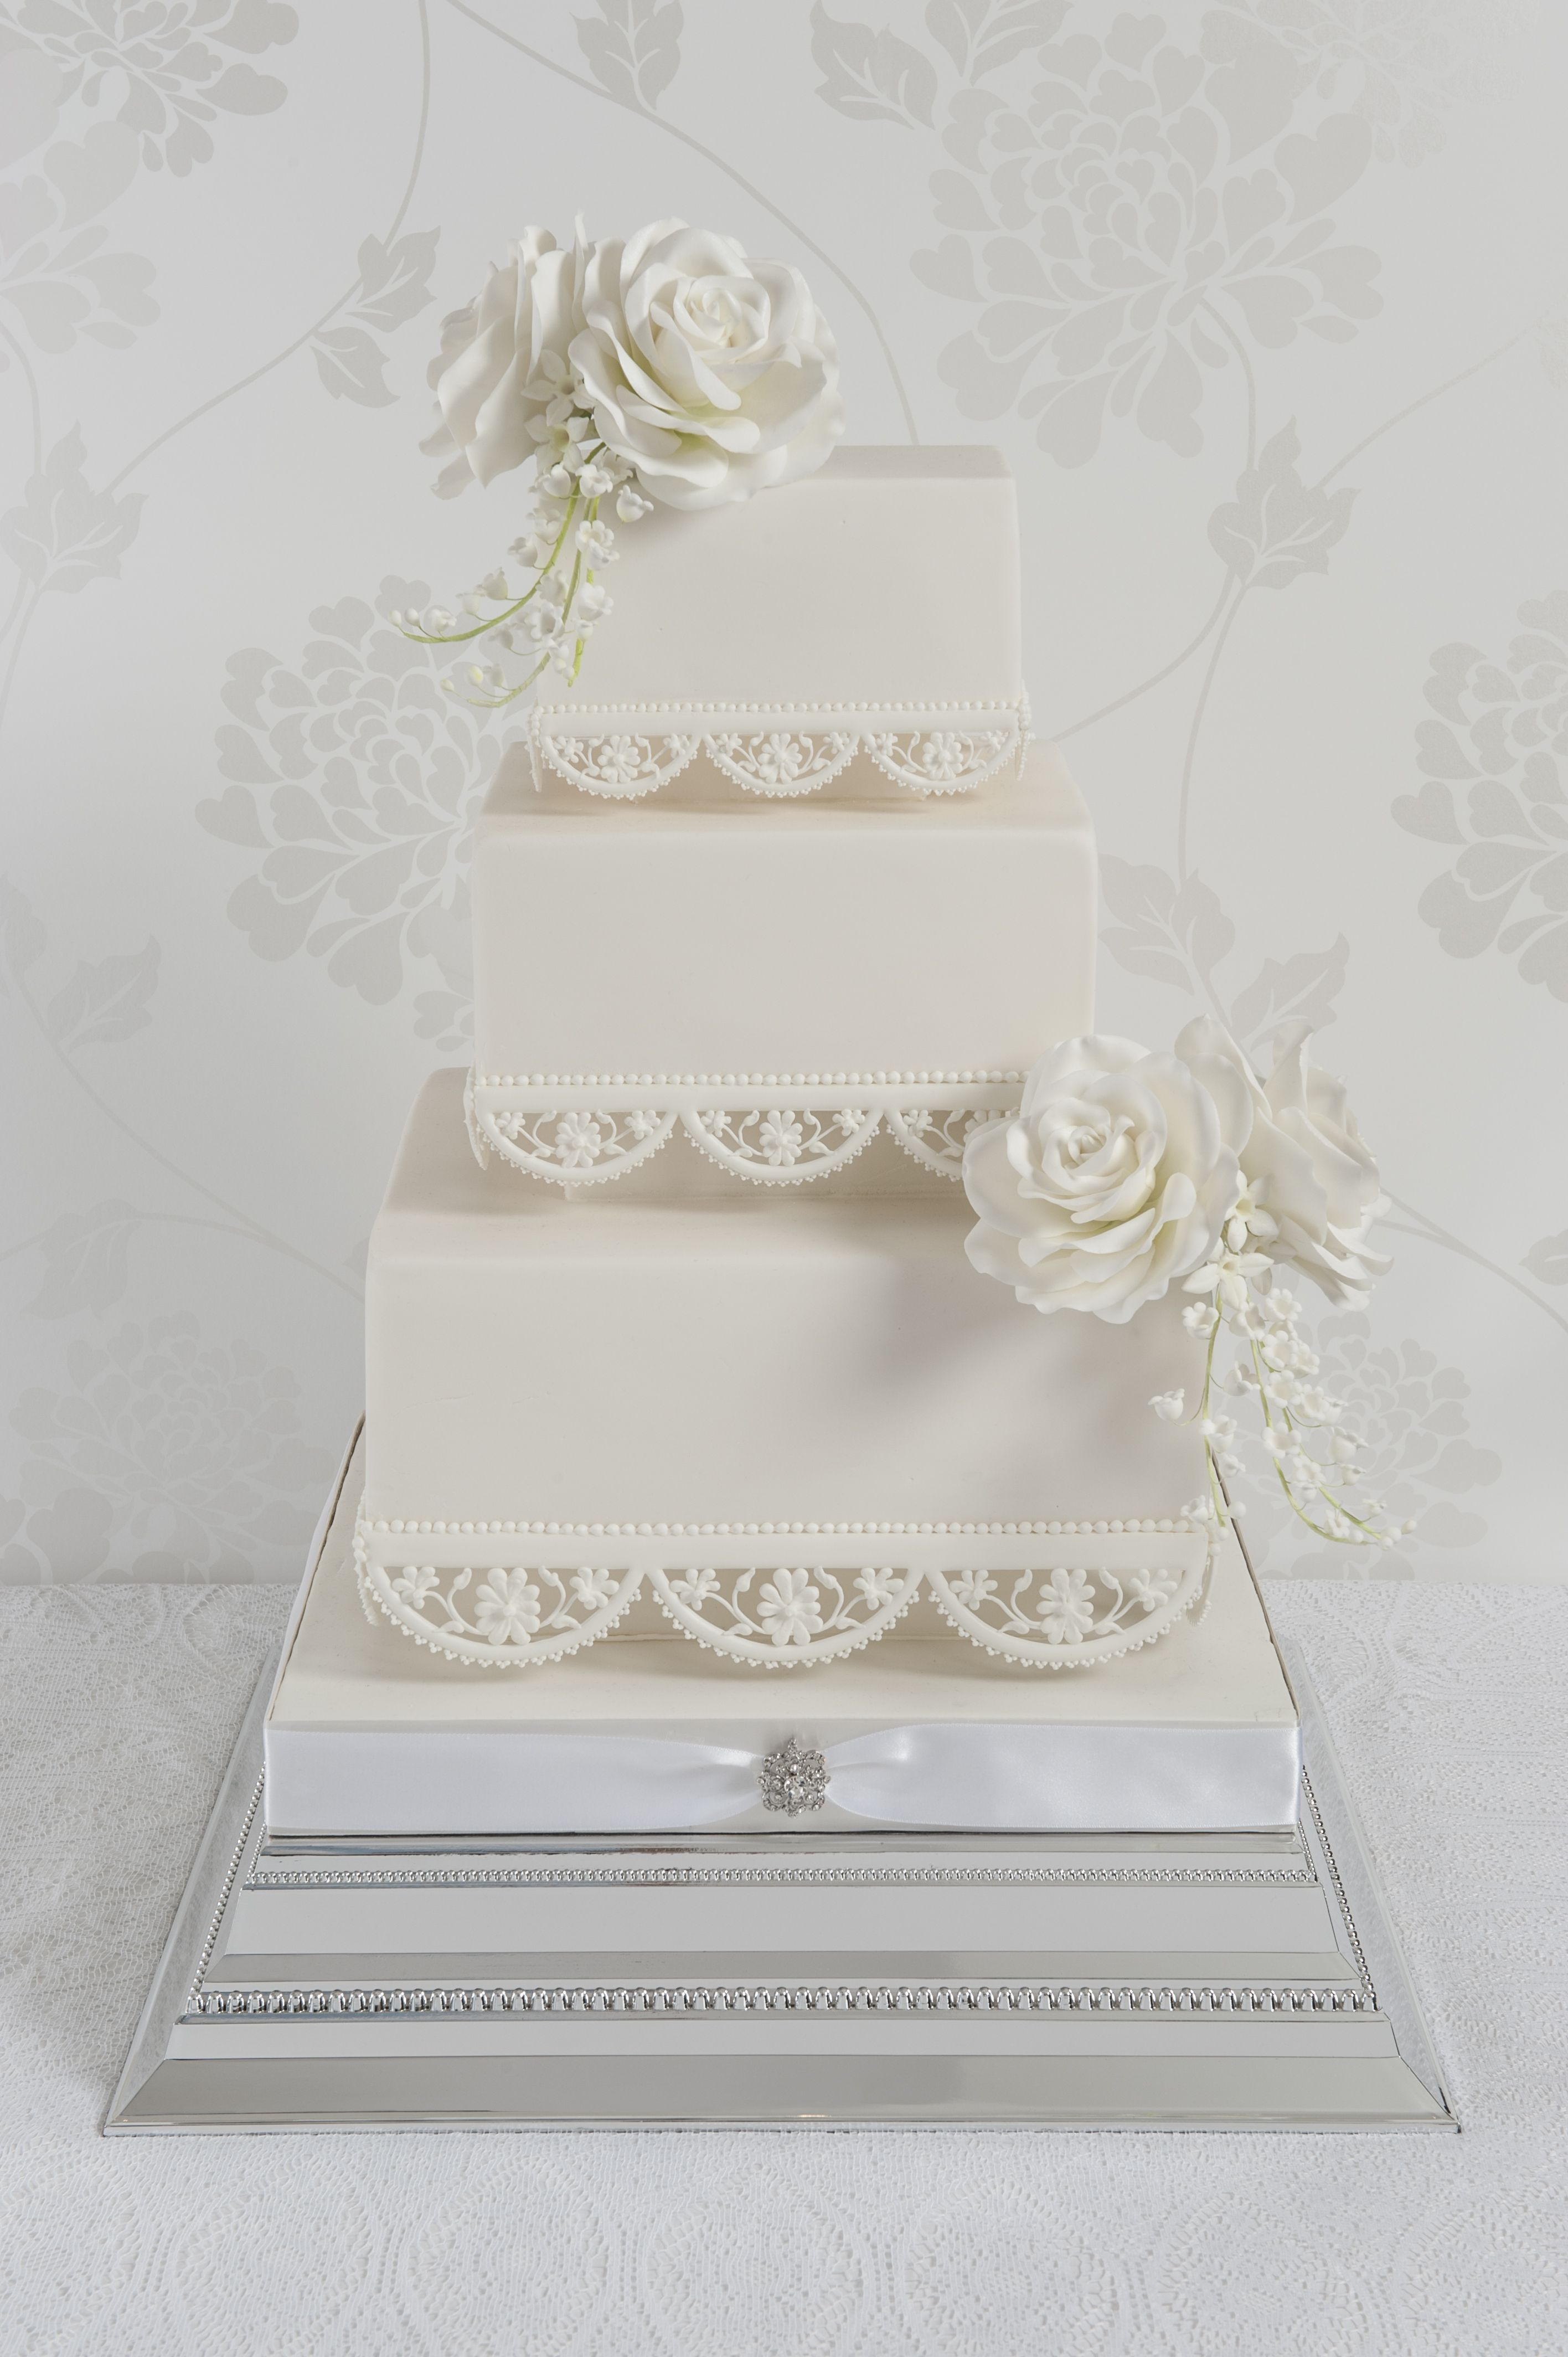 Square 3 tier wedding cake with hand piped lace edging. Adorned with ...